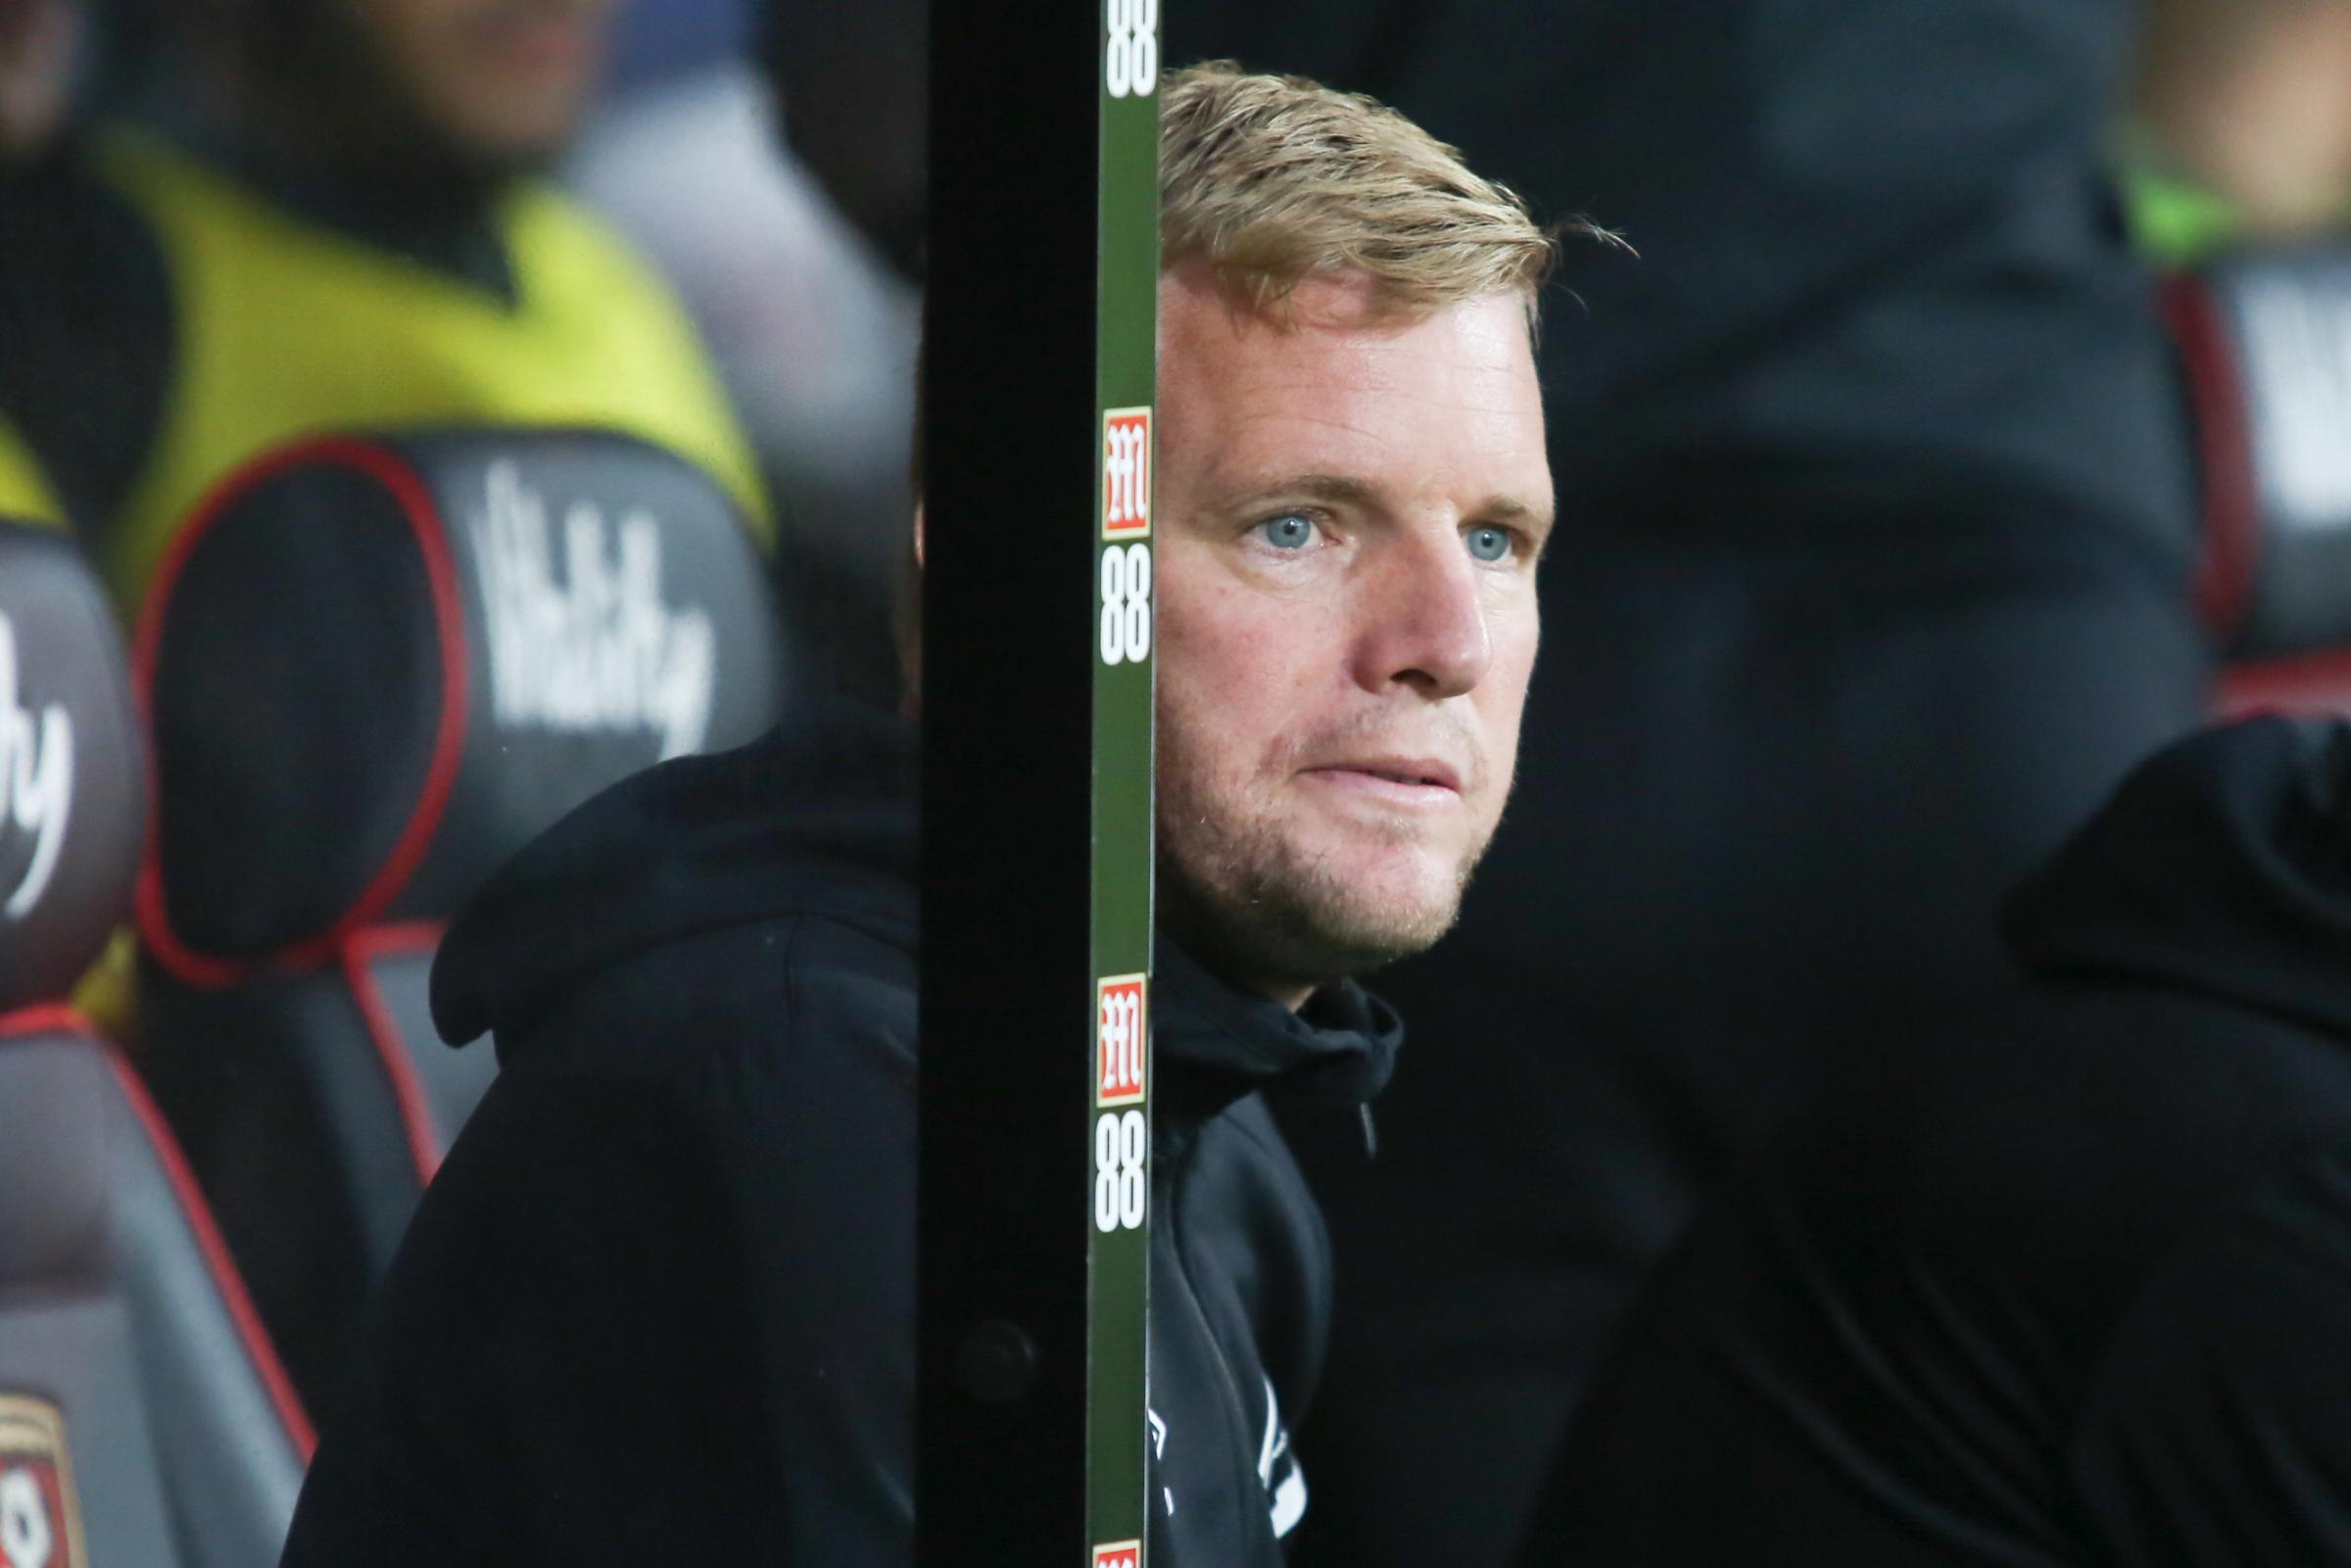 'The football club is a focal point of that town' - Eddie Howe feels for people of Bury after their expulsion from the EFL